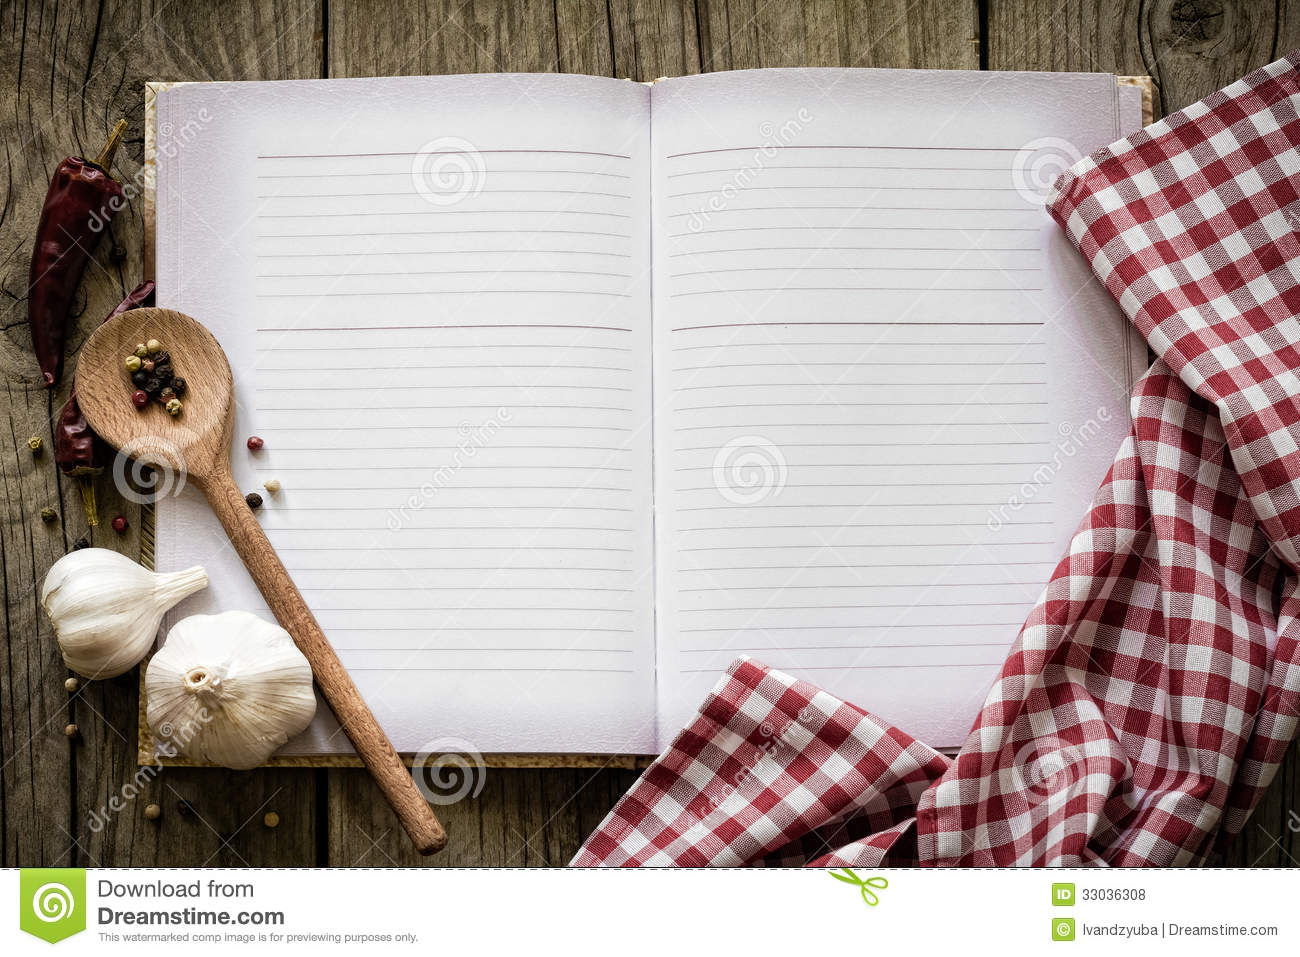 recipe book royalty free stock photos - image: 33036308